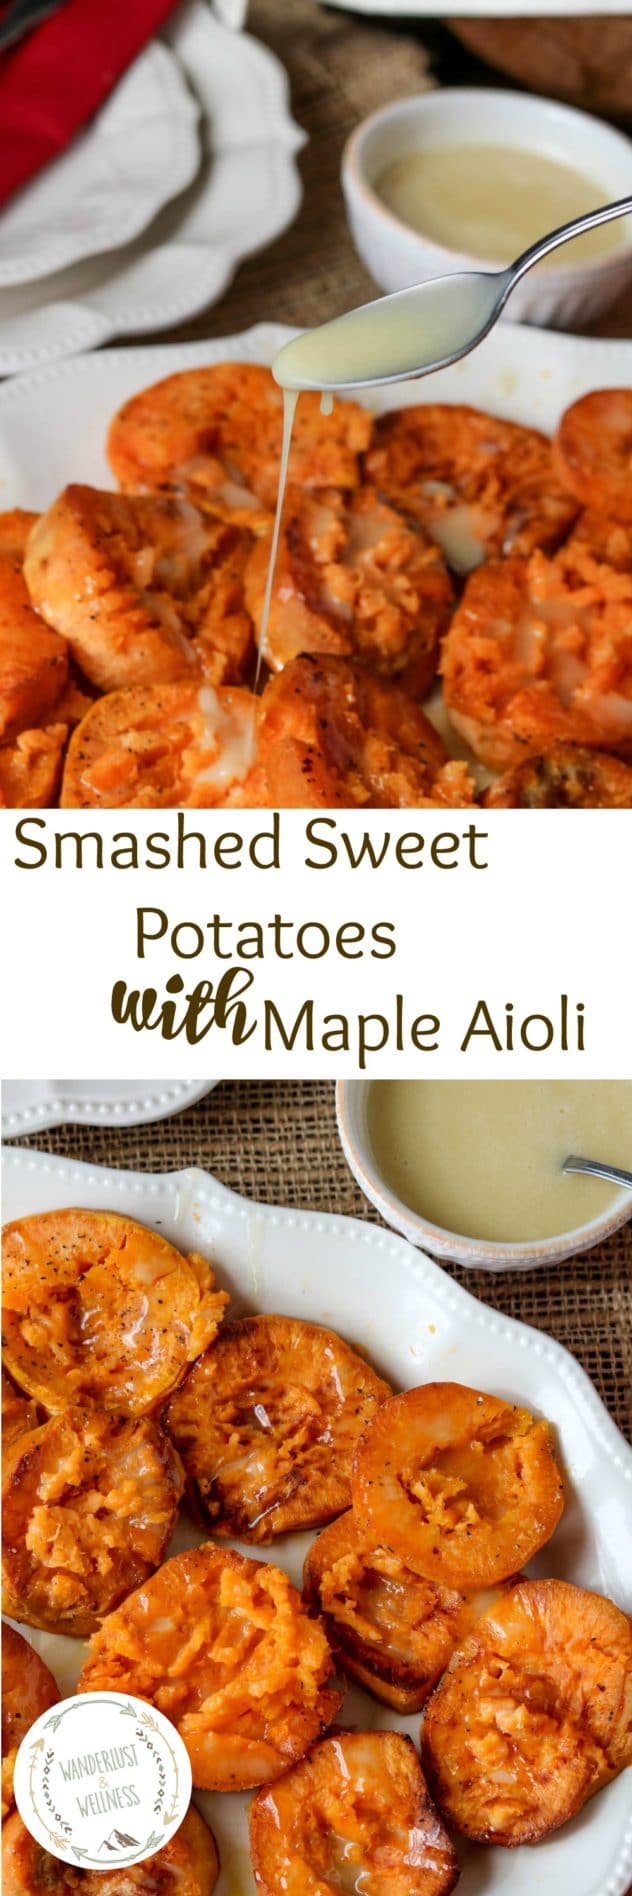 smashed-sweet-potatoes-maple-aioli